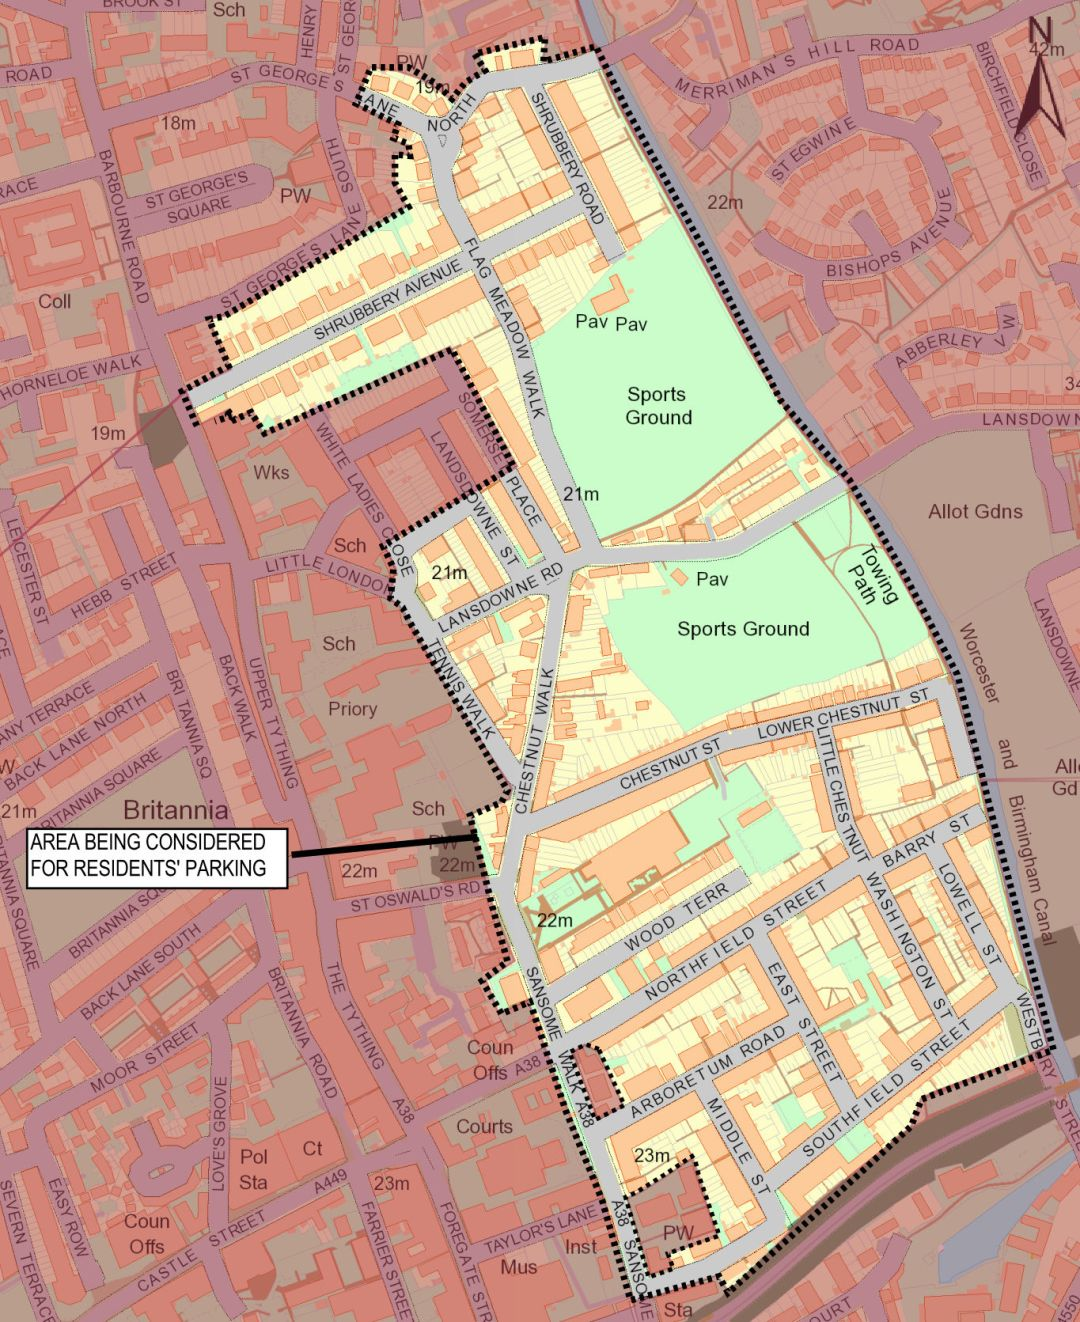 Residents' parking scheme